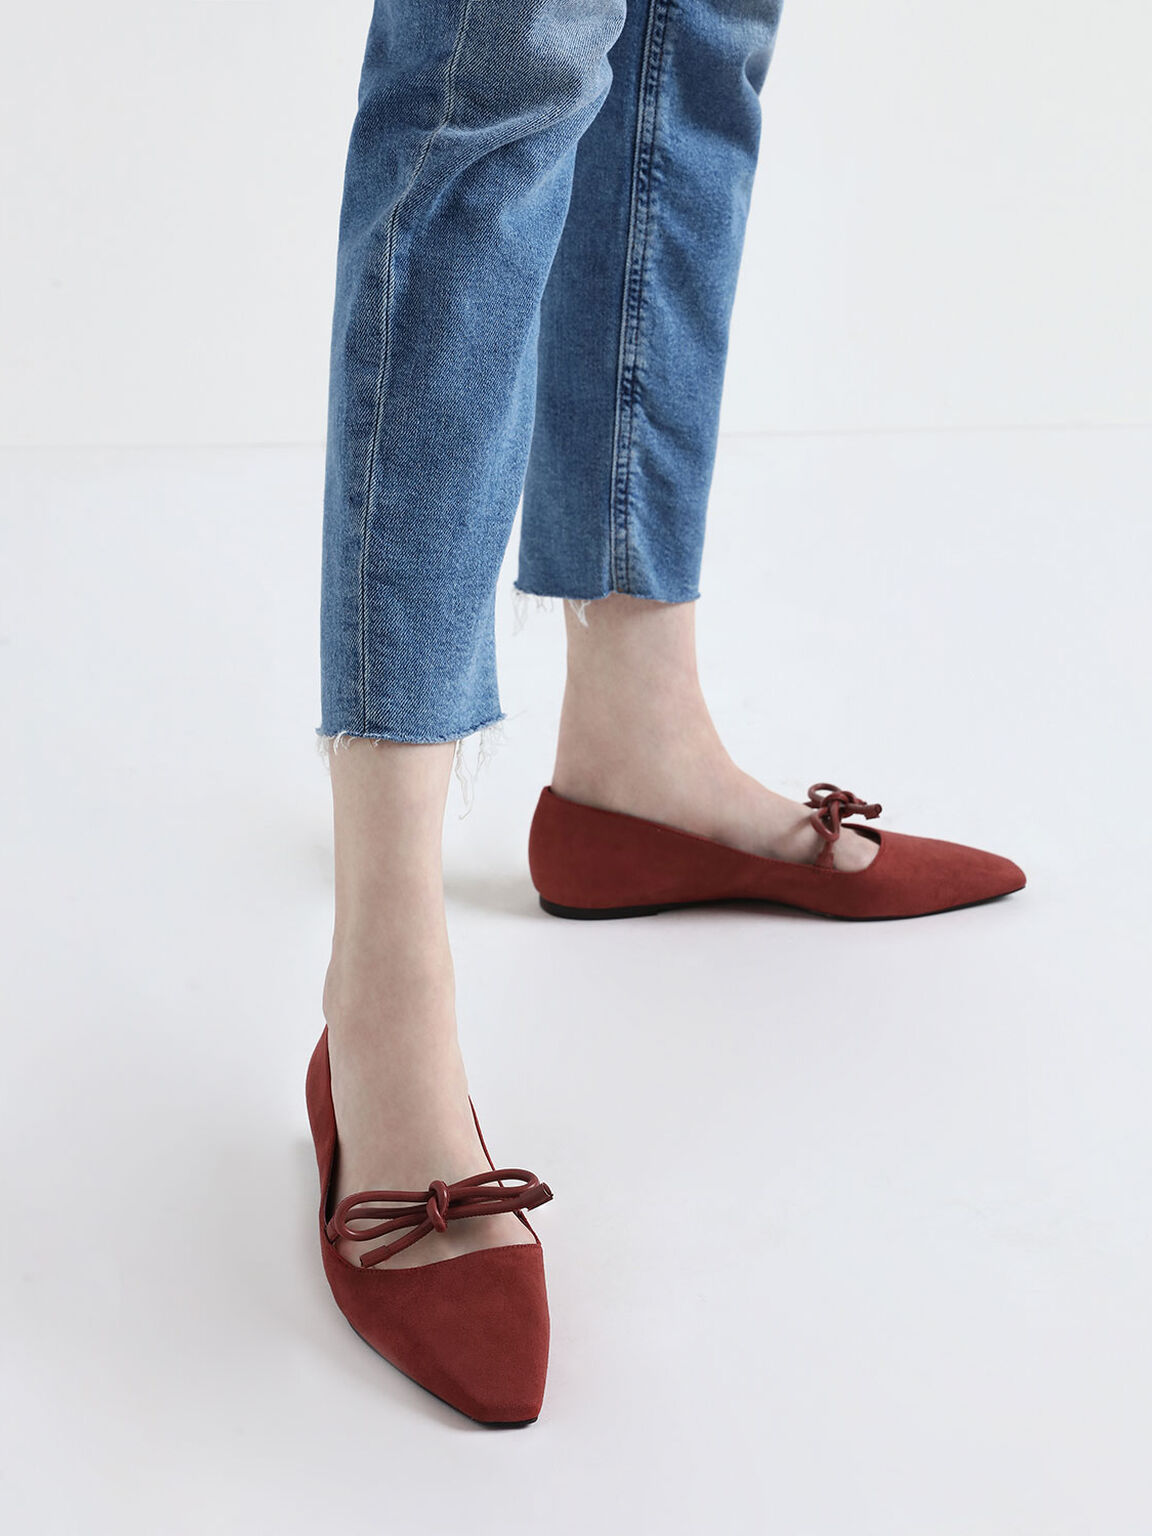 Textured Mini Square Toe Bow Strap Ballerina Flats, Brick, hi-res